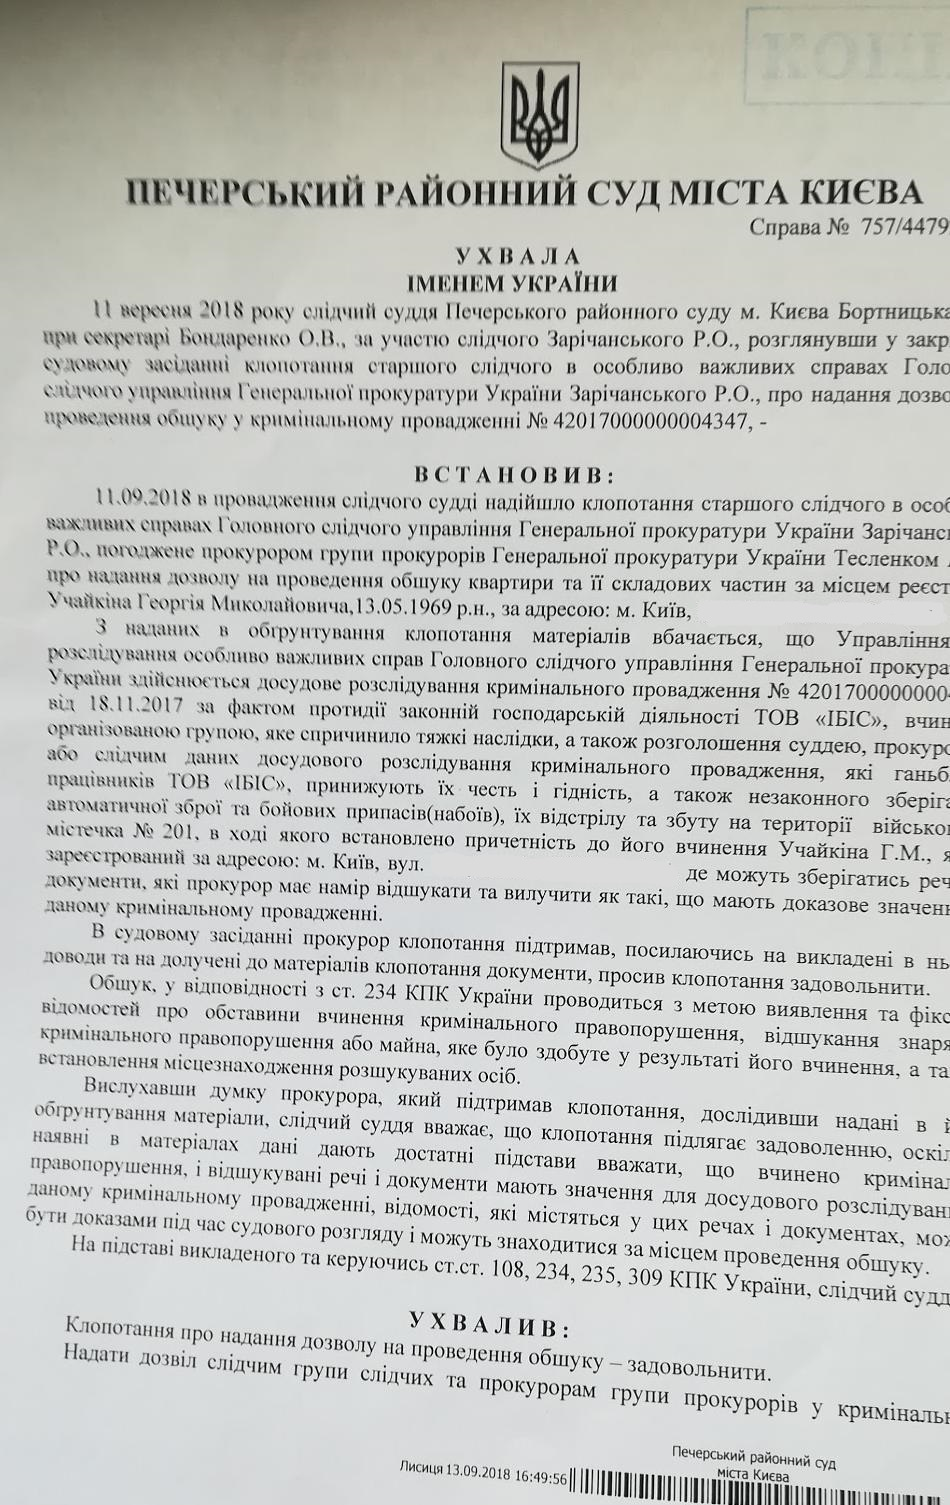 The decision of the Pechersk District Court